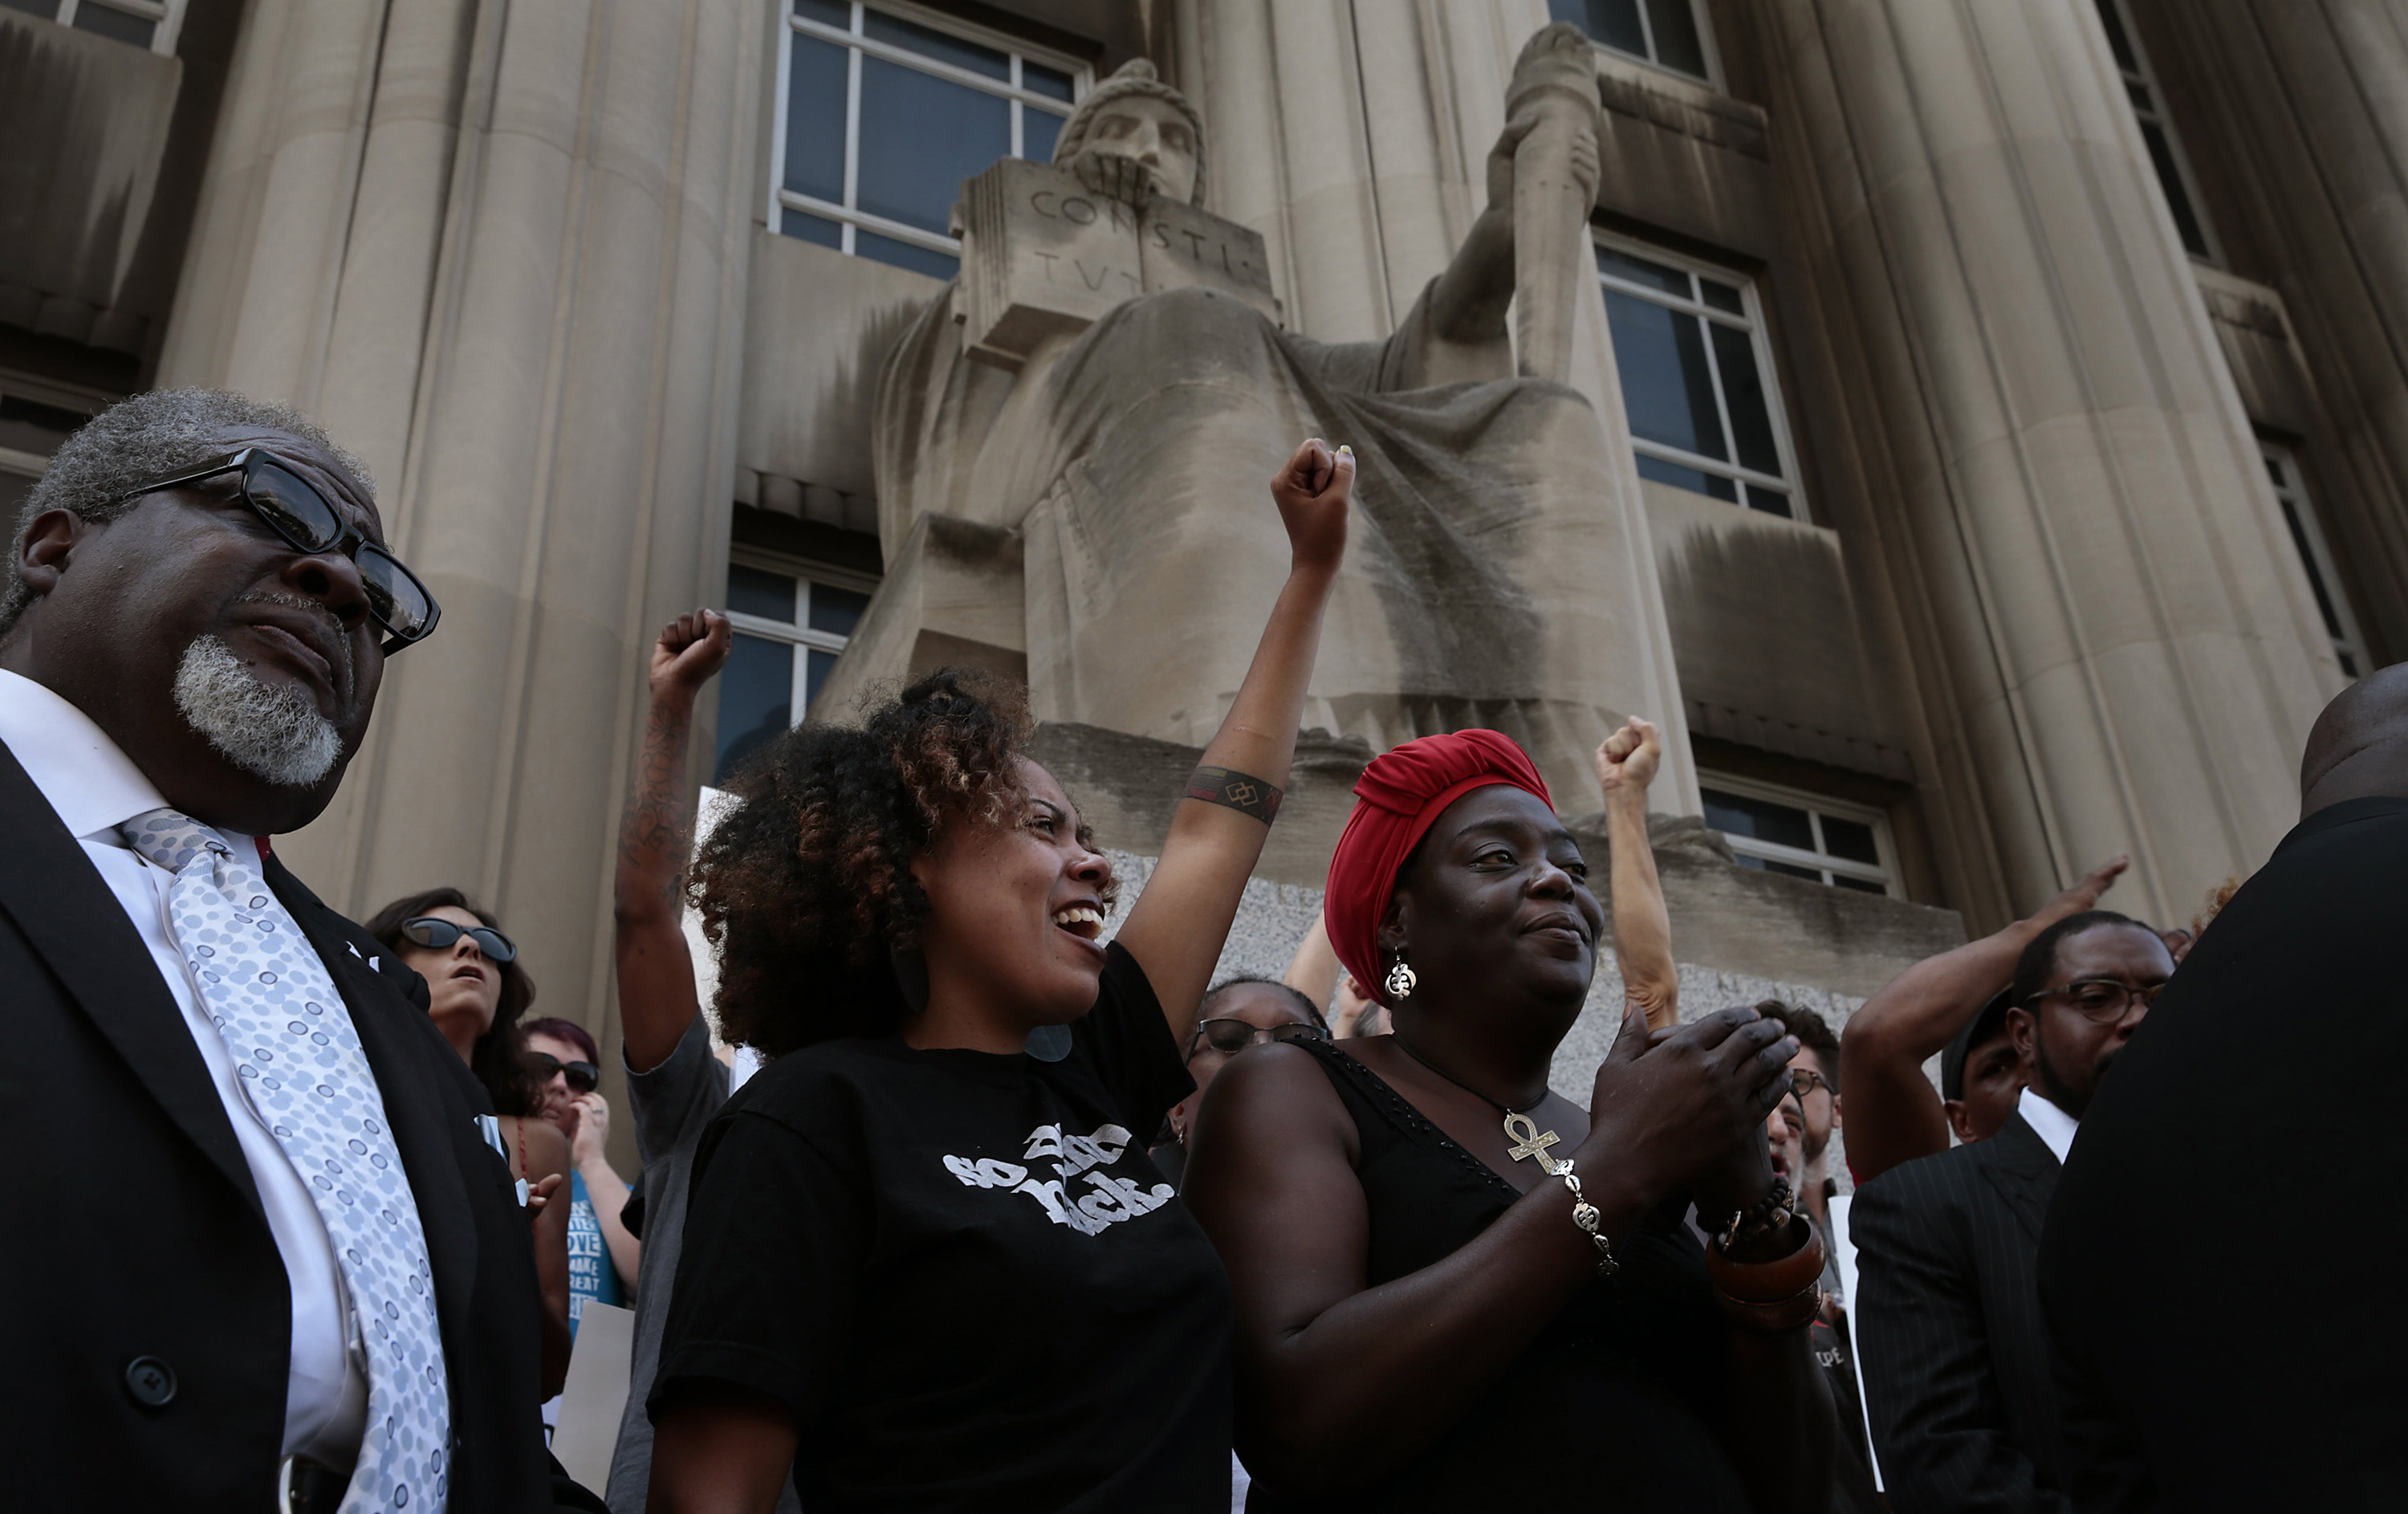 Barricades erected around courthouses in advance of Stockley verdict